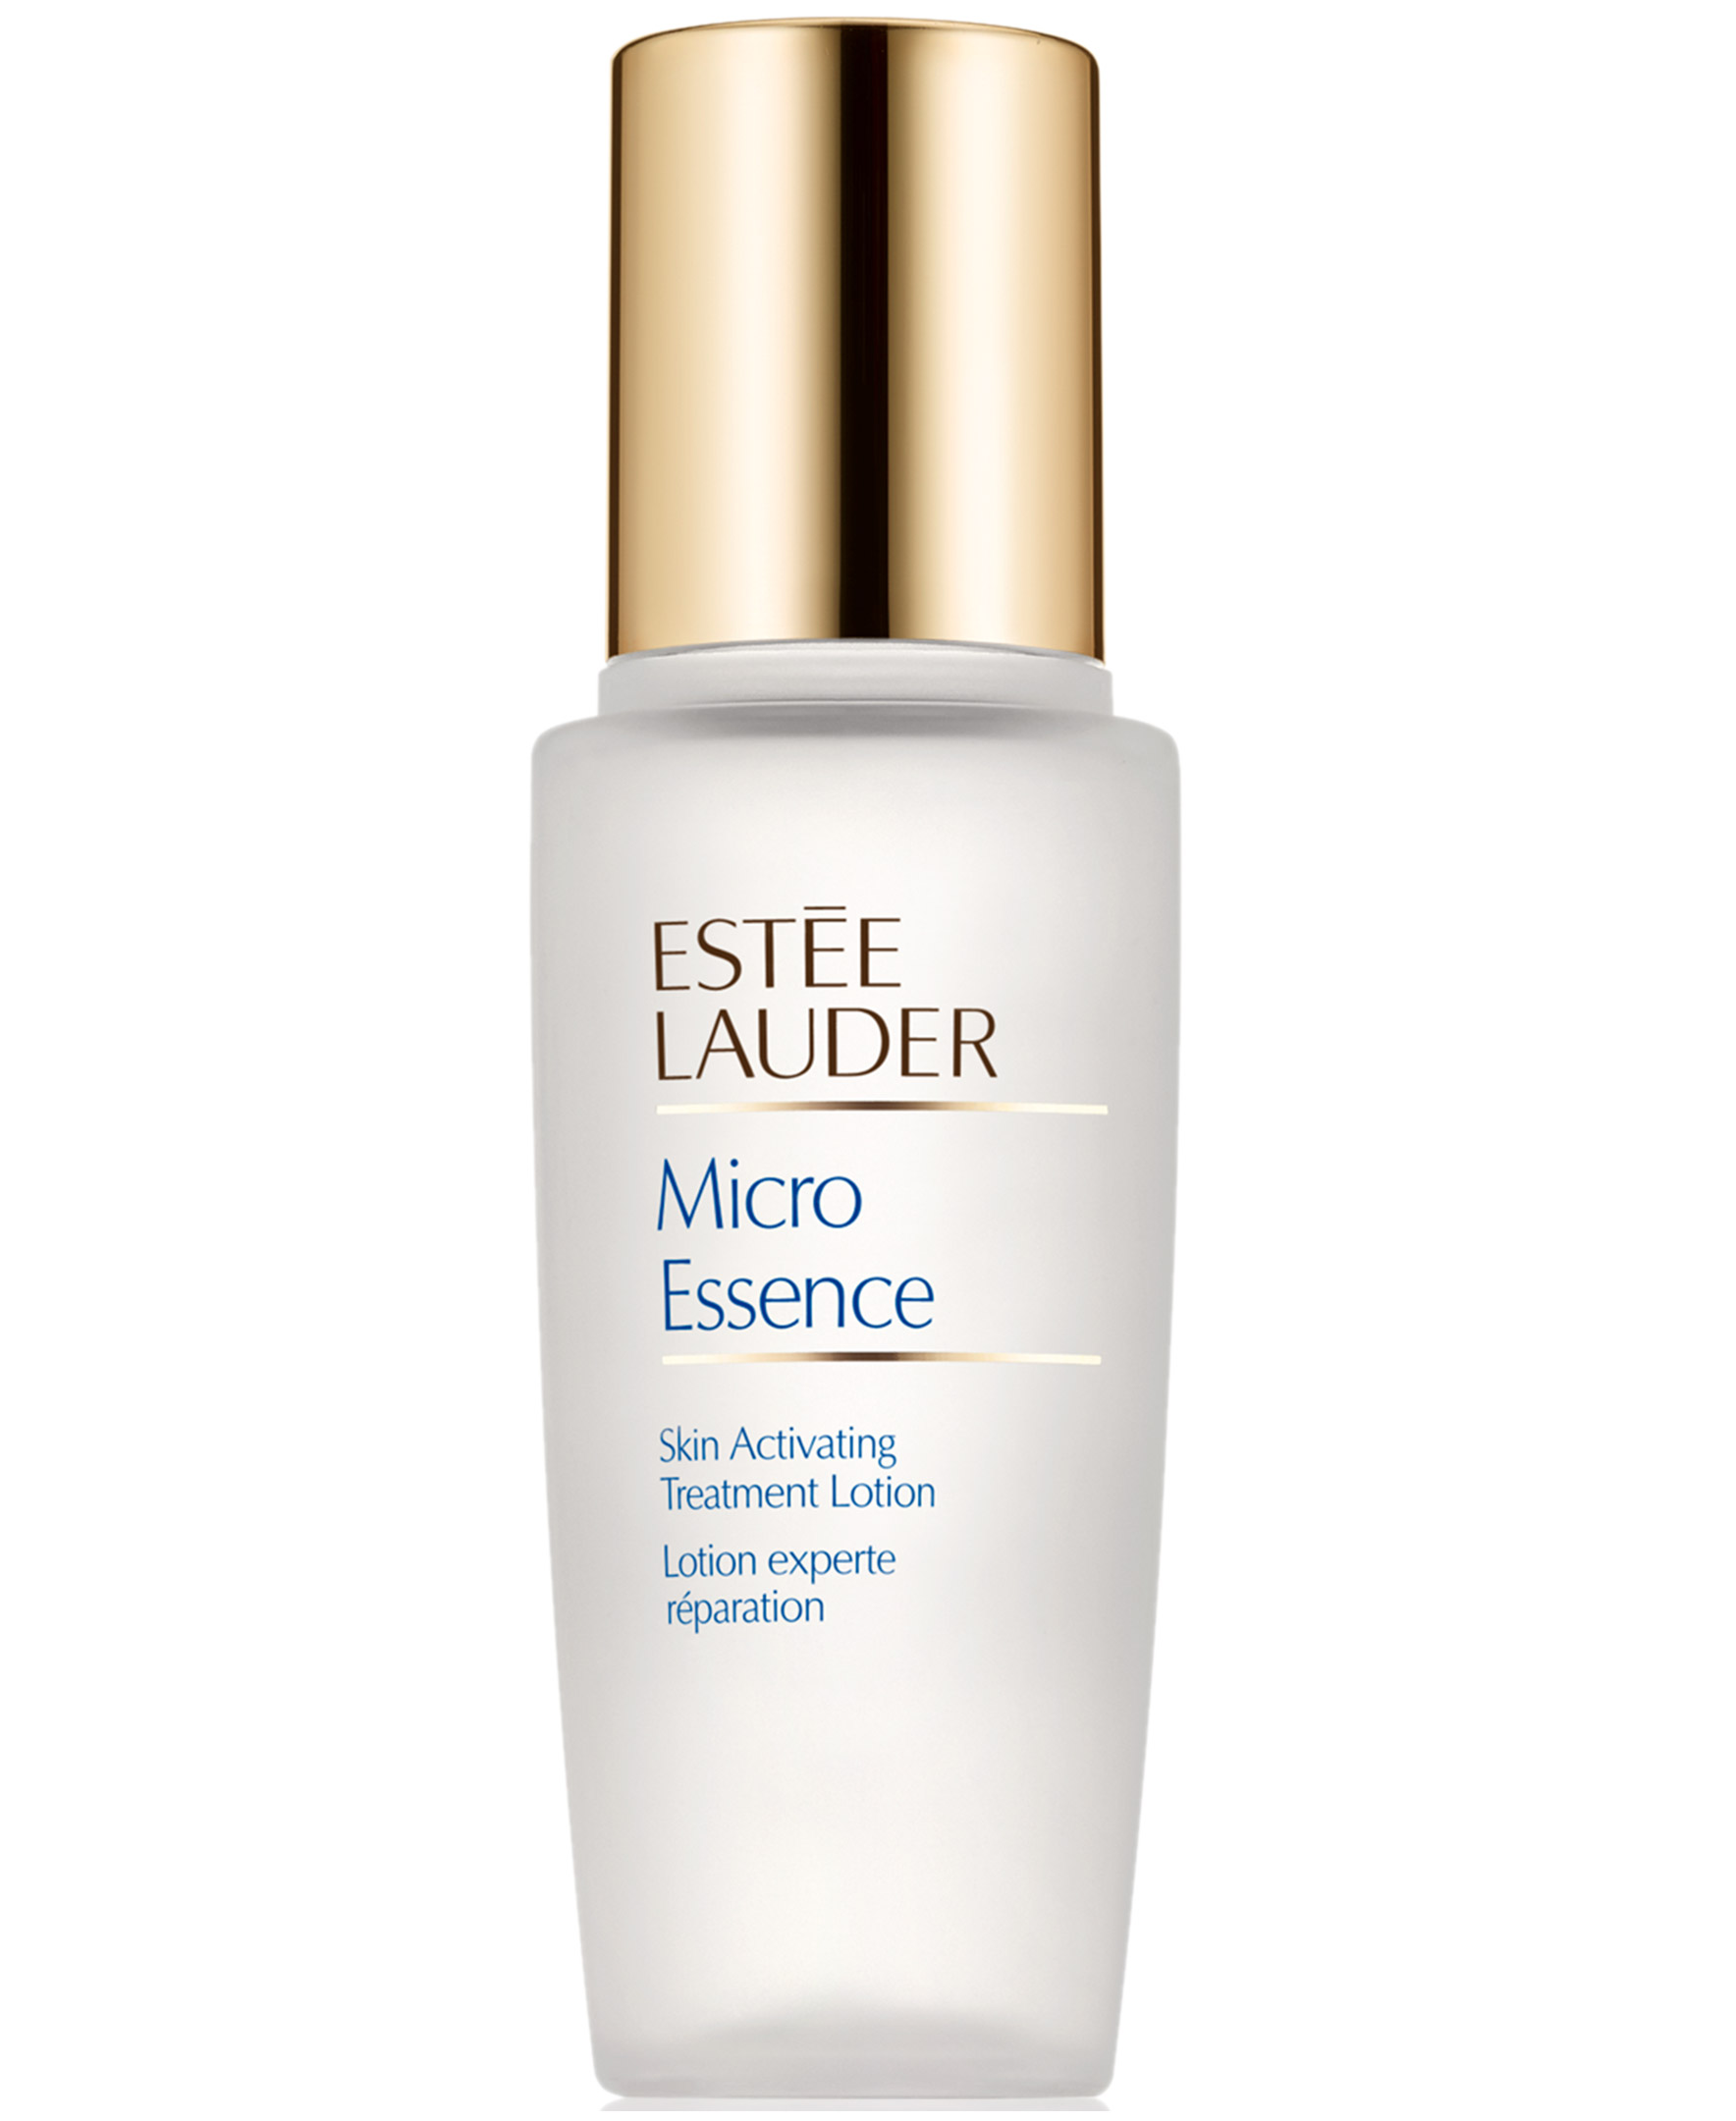 Free Travel-Size Micro Essence and Gift Bag with Estee Lauder Skincare Purchase @ macys.com